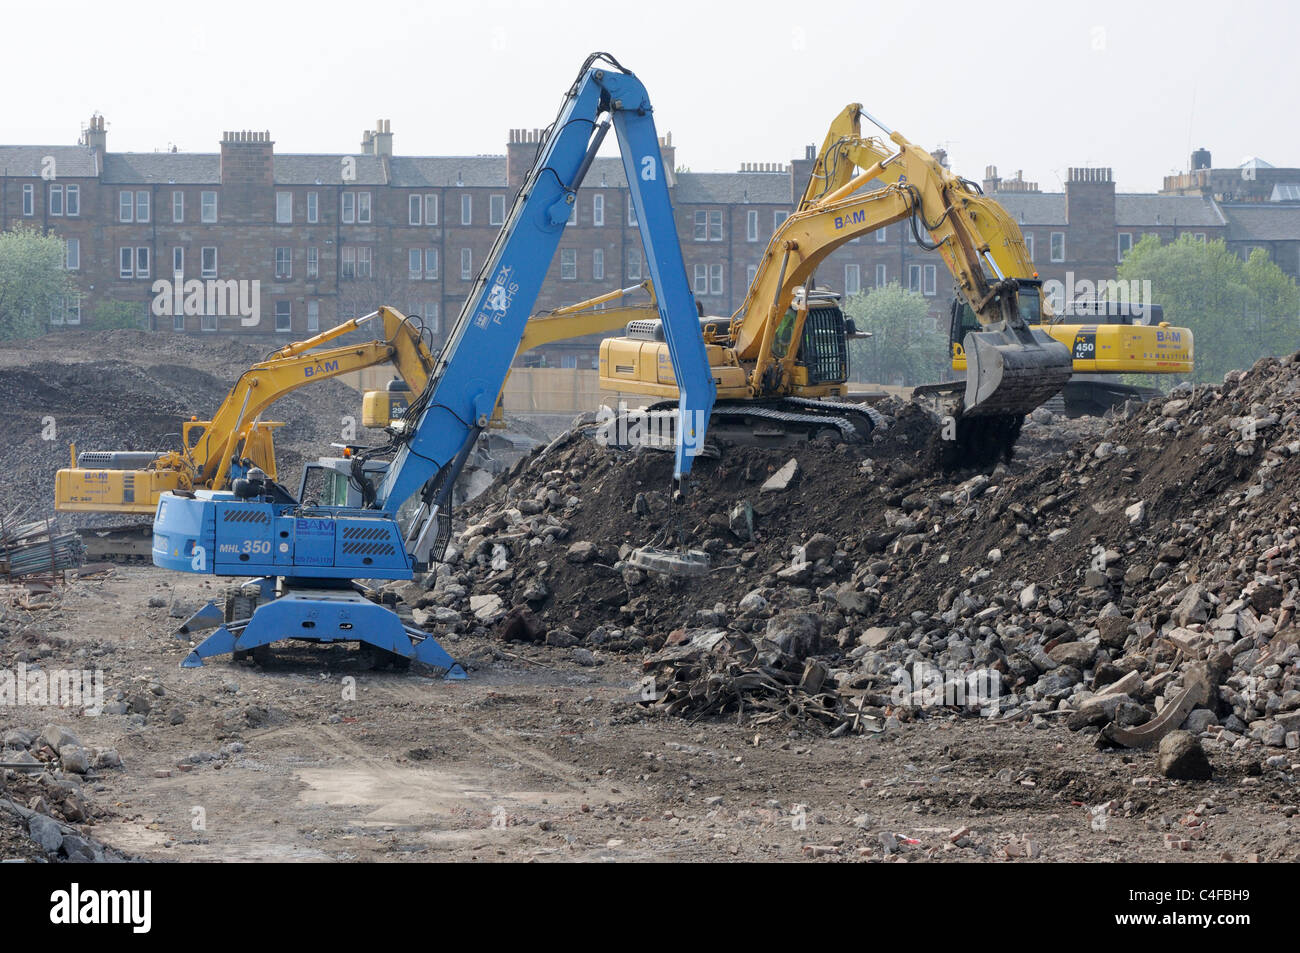 Earth movers working at the demolition site of the former Fountainbridge Brewery, Edinburgh - Stock Image